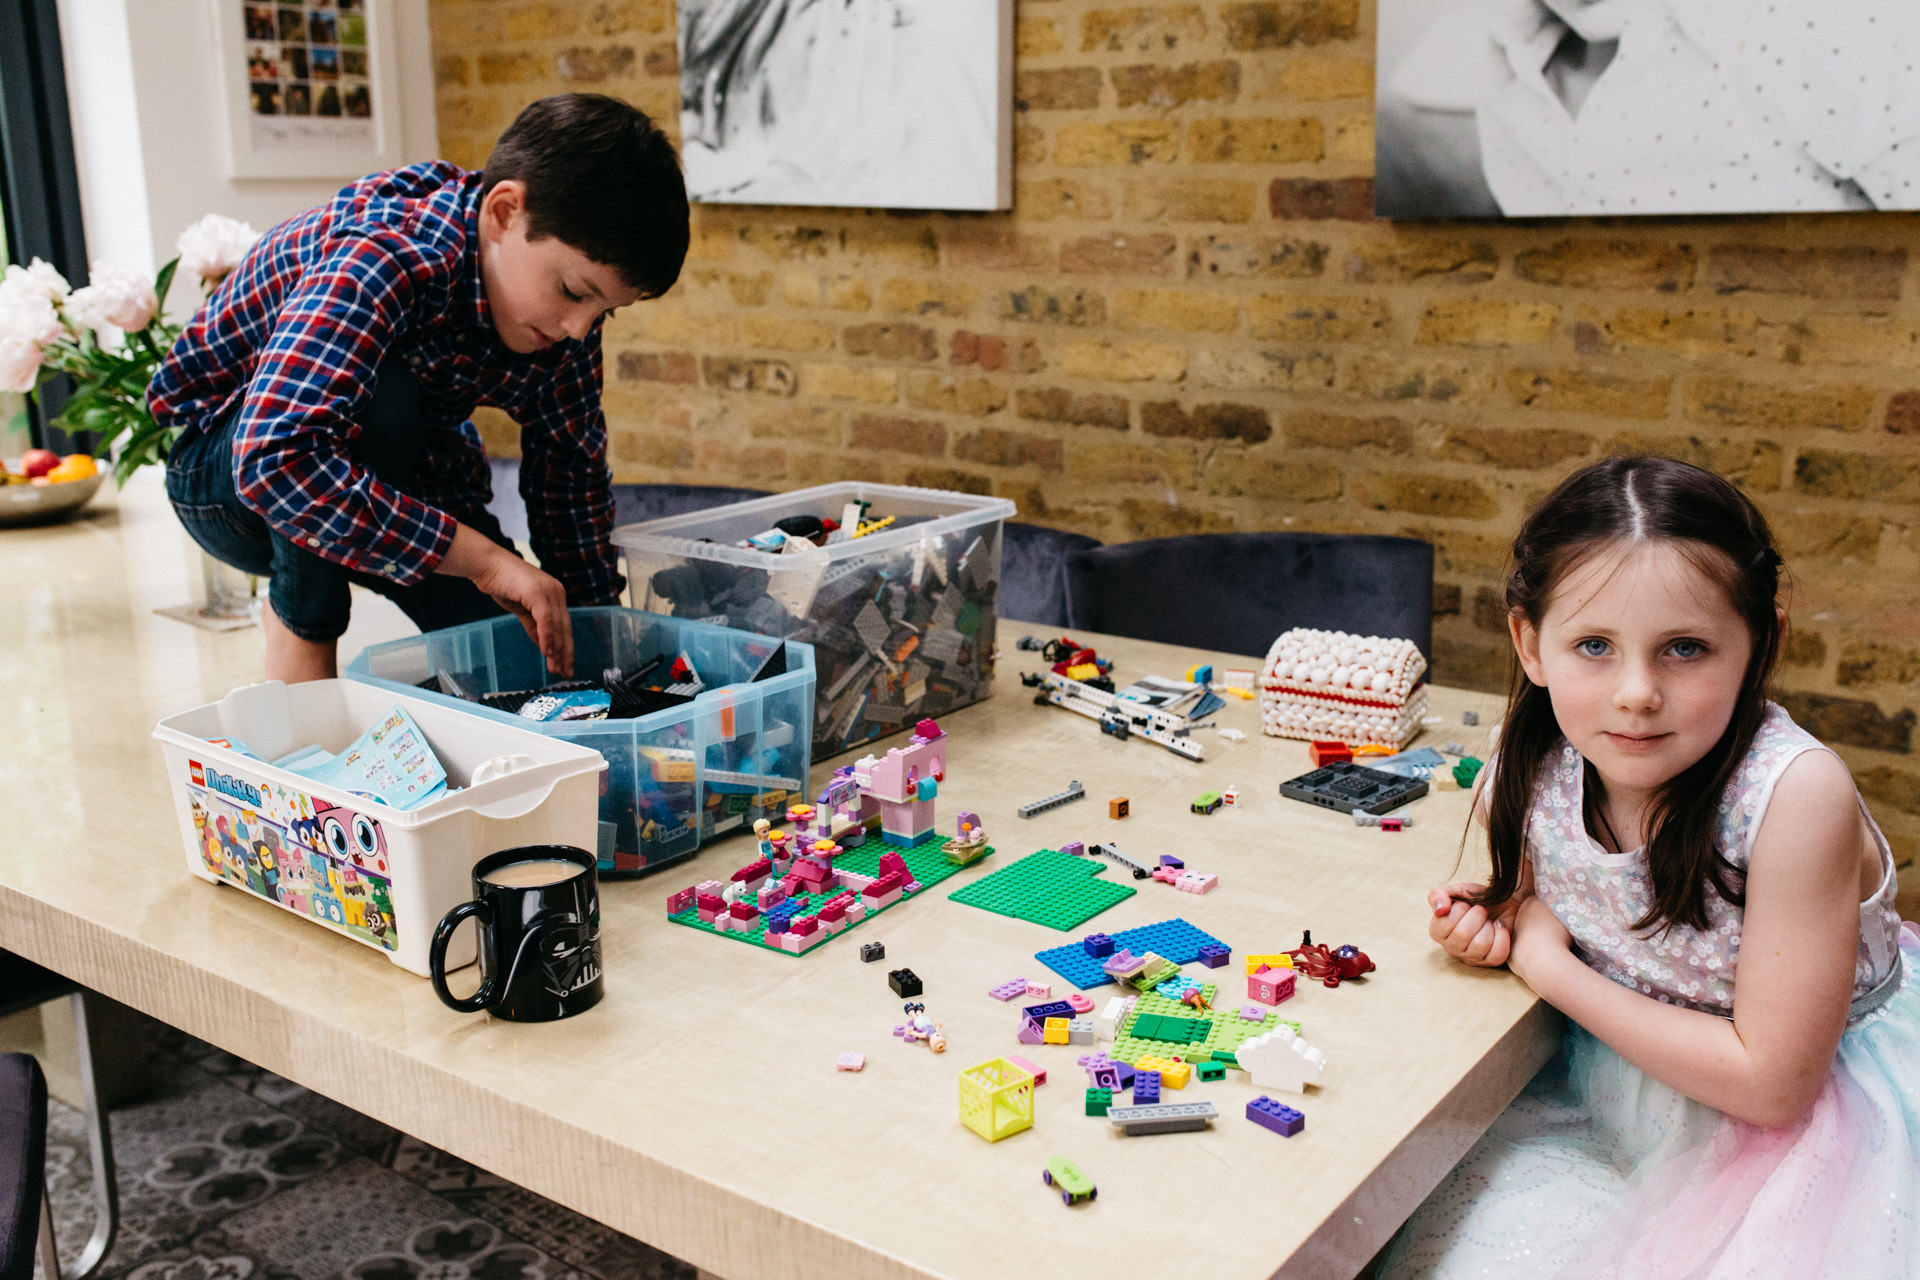 Family photography in London | A family photoshoot with children playing lego